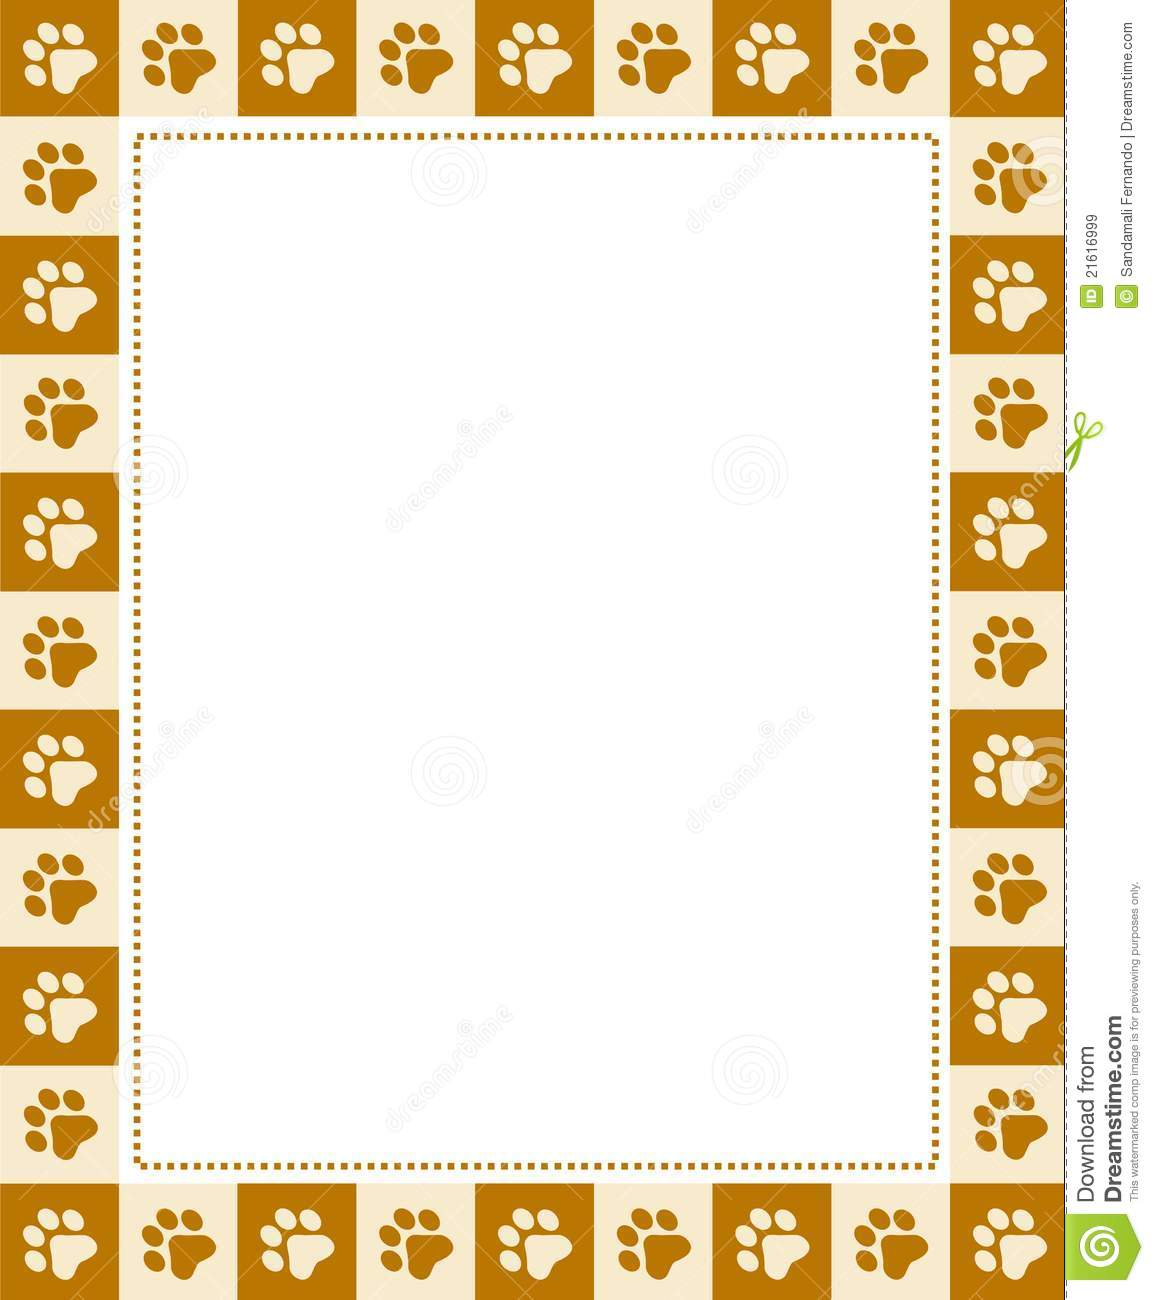 Paw Print Frame Stock Illustration Illustration Of Animal 21616999